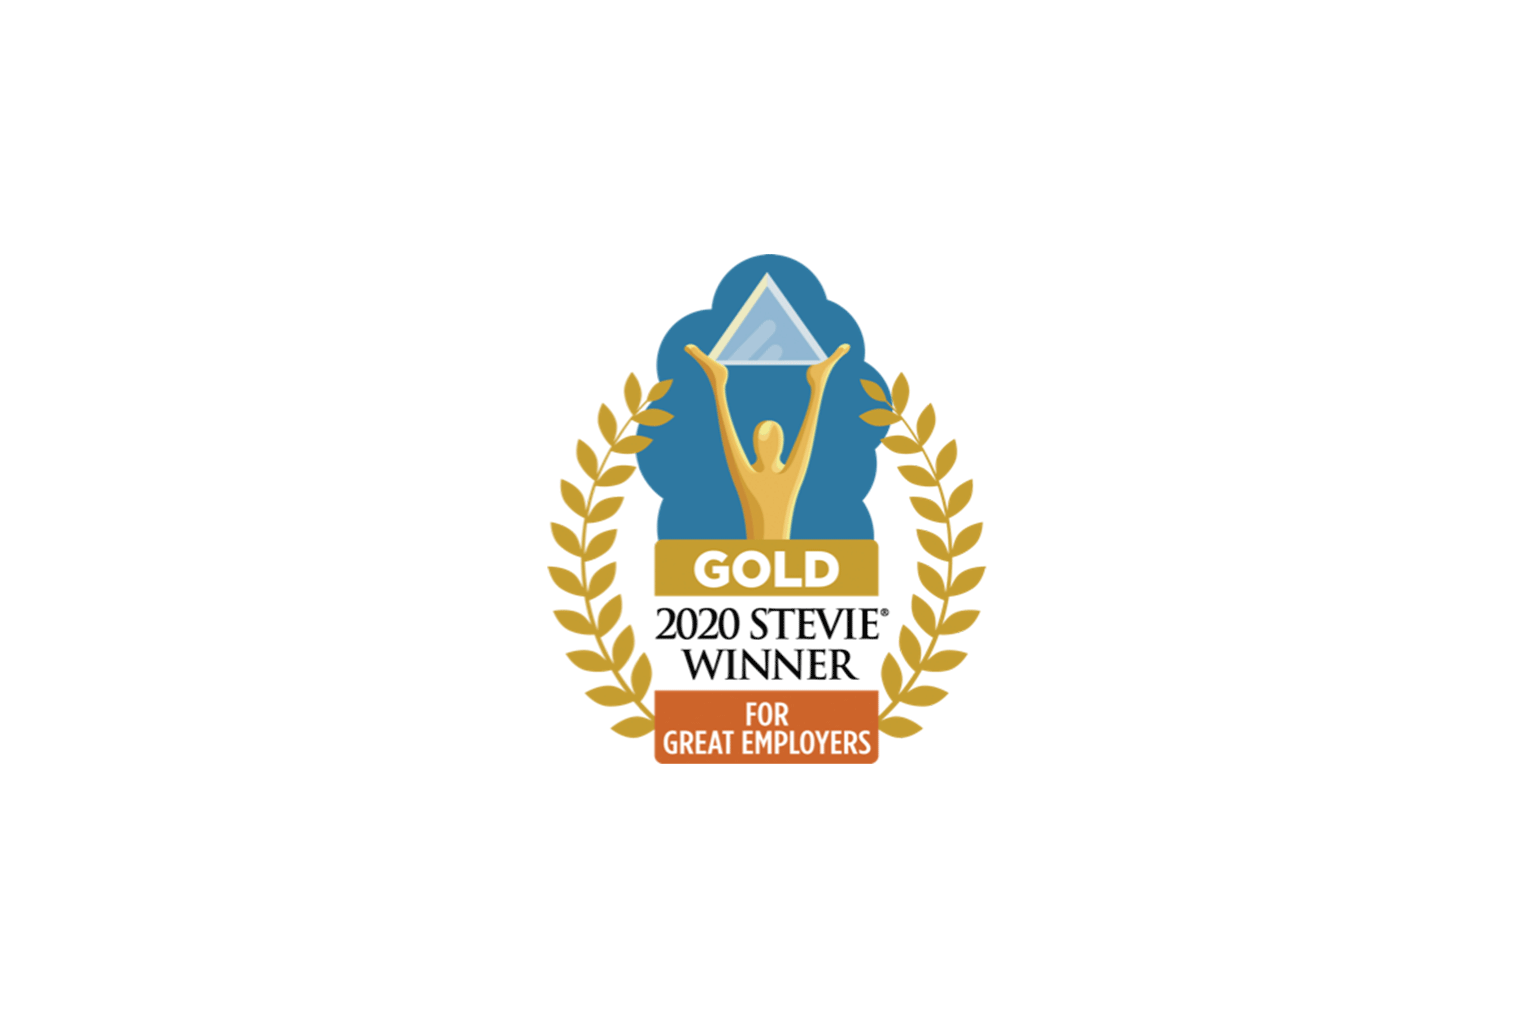 2020 Stevie Winner Gold